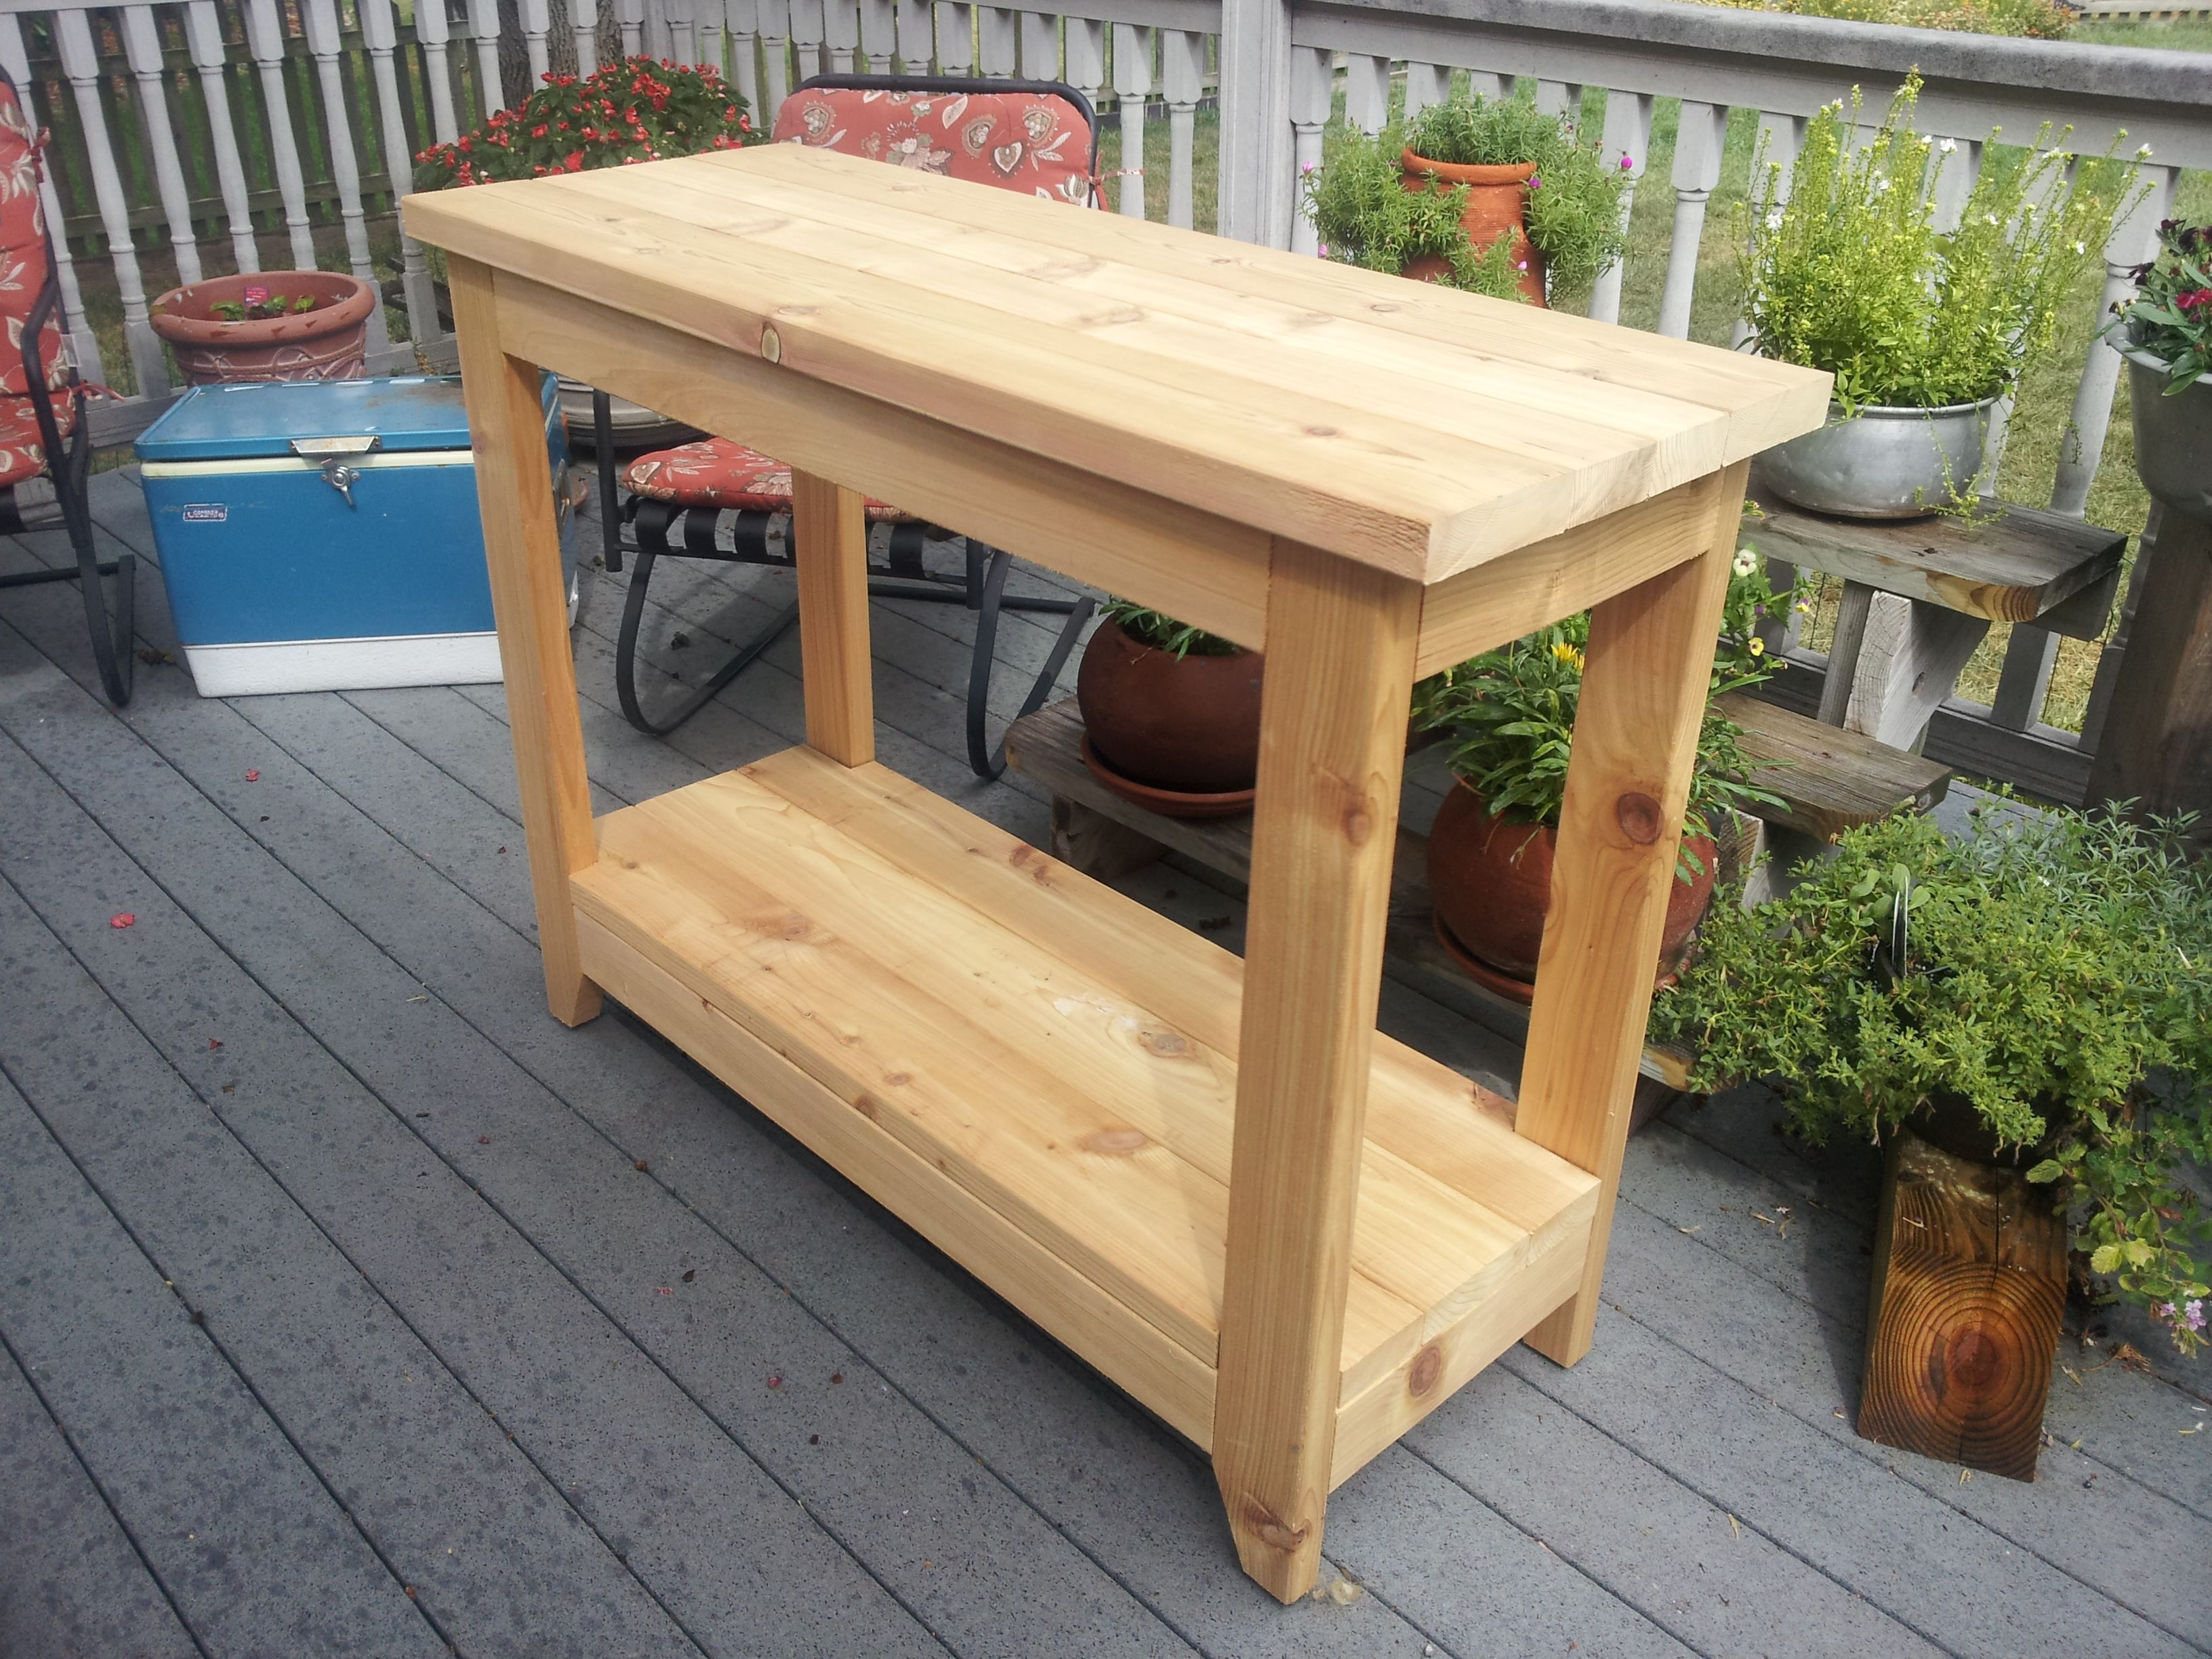 Woodworking Table Ideas Workbench Plans 2x4 2x6 2x4 Projects In 2019 Workbench